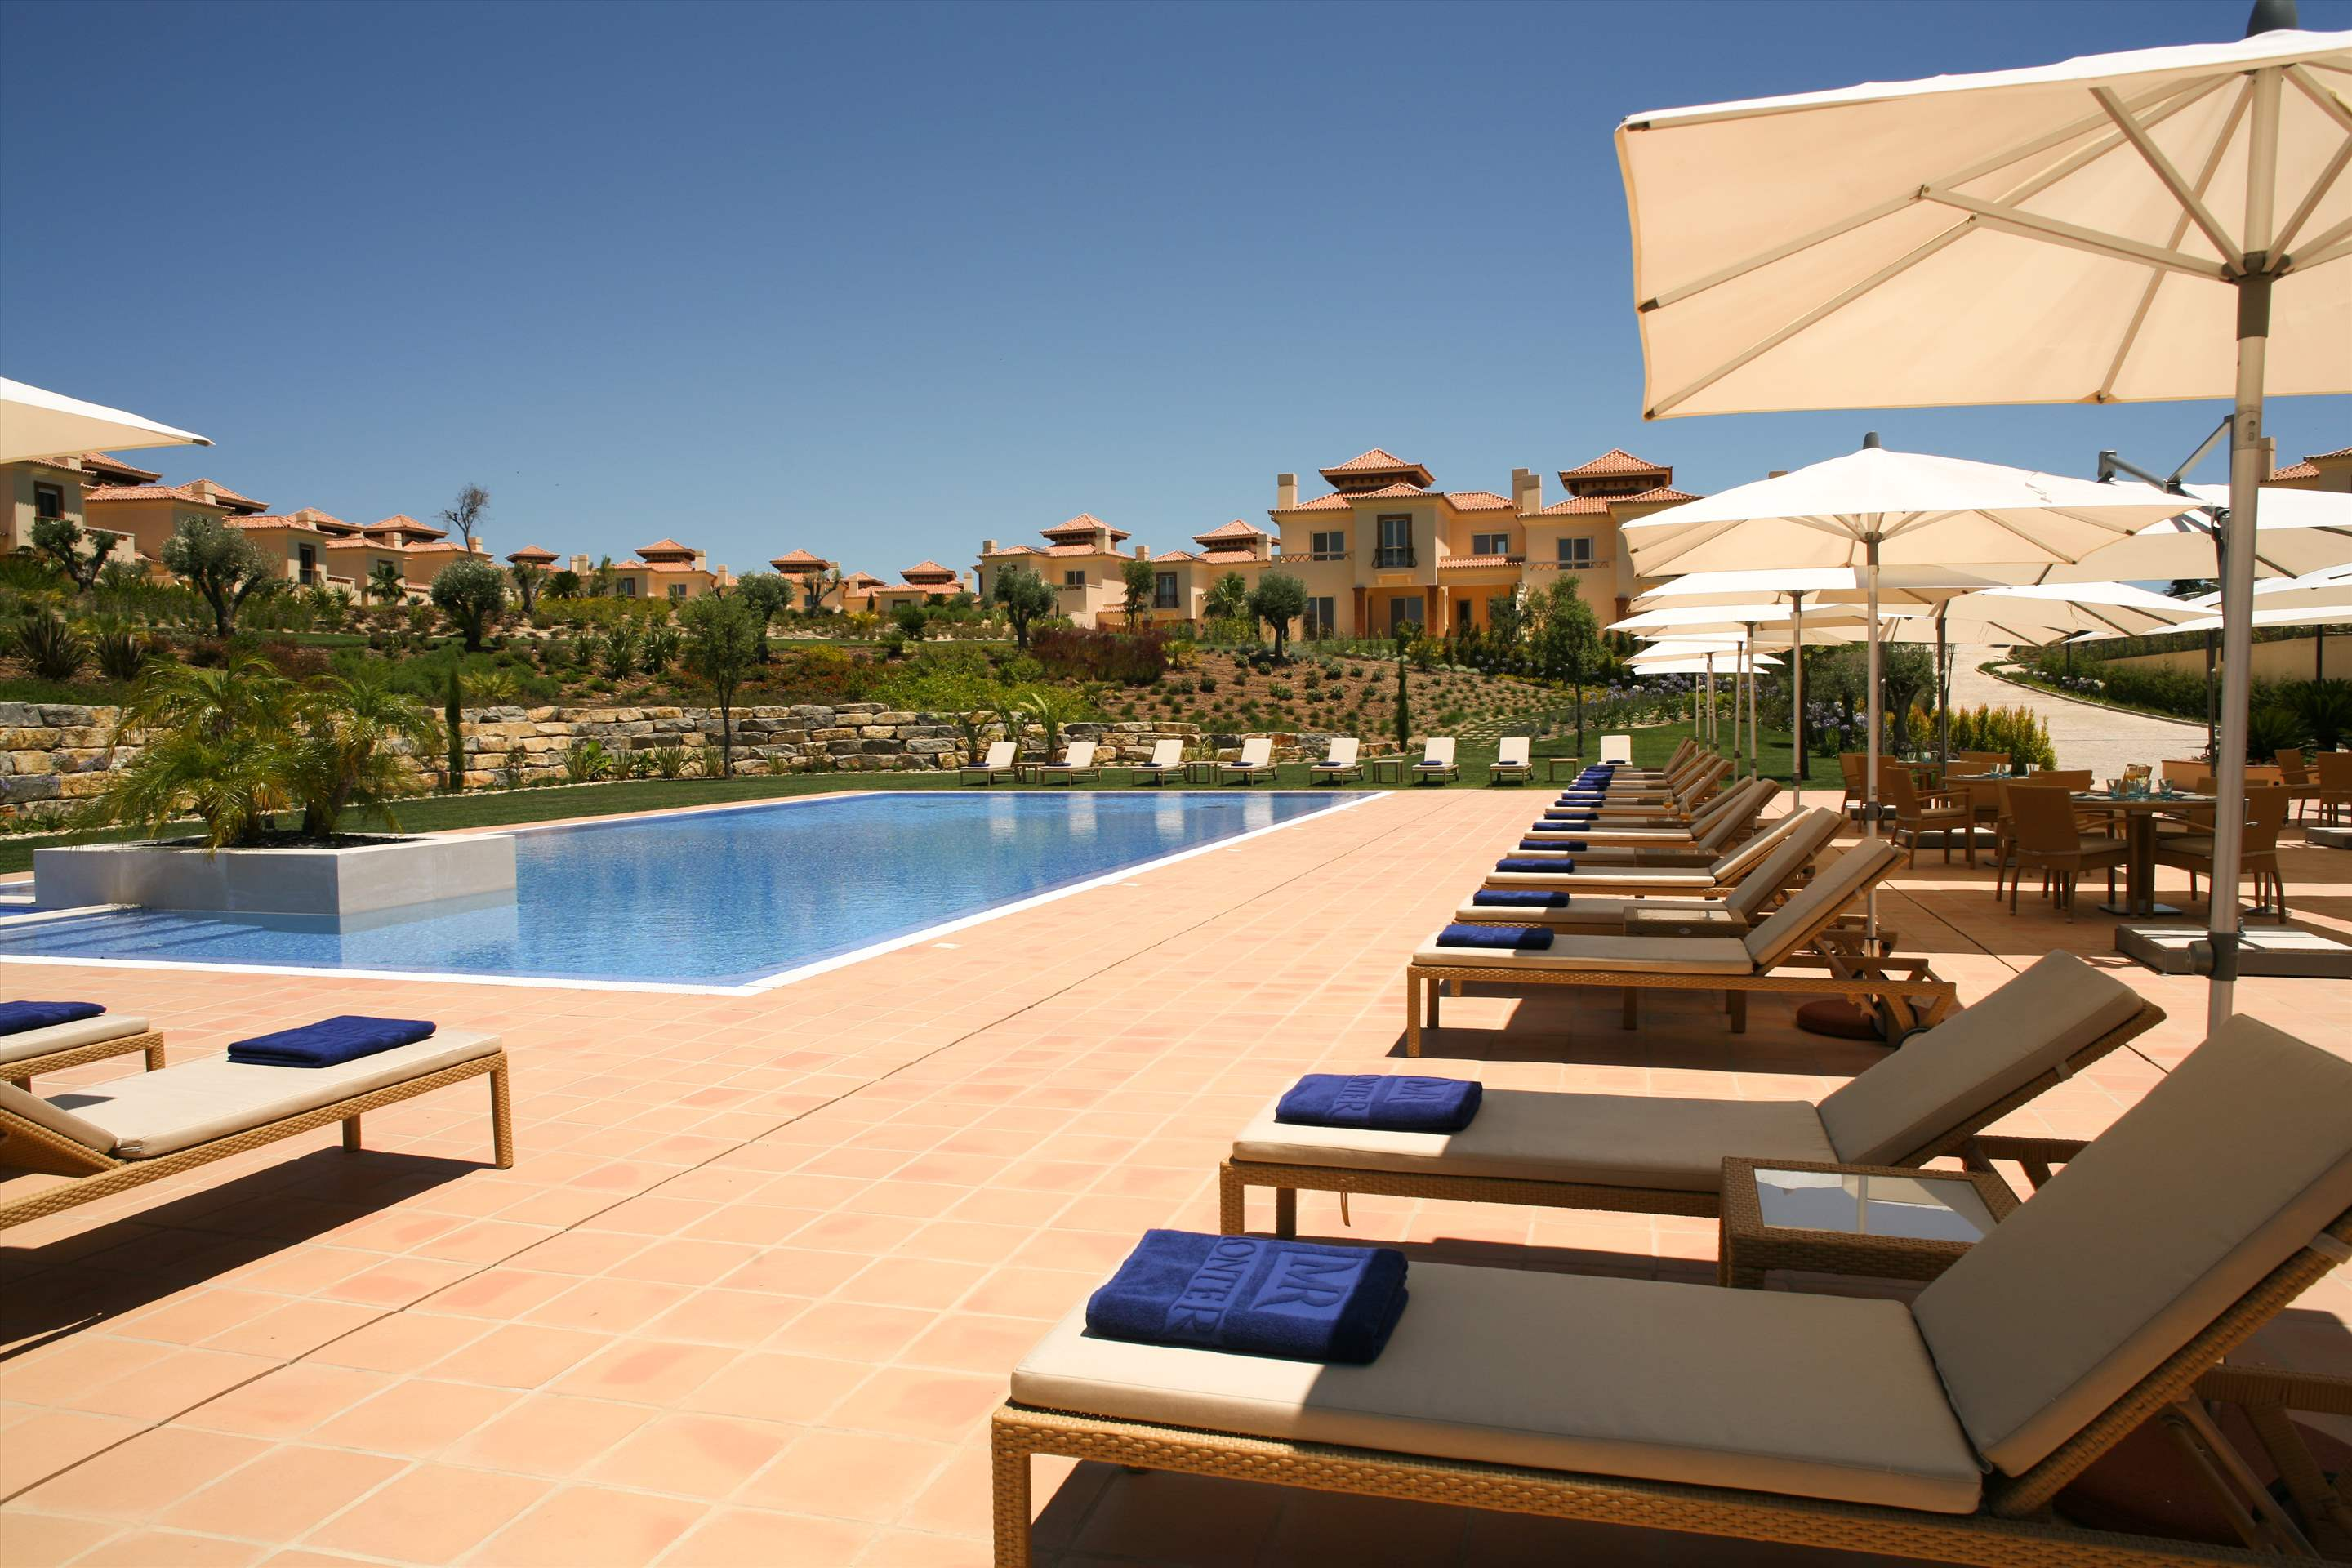 Monte Rei One Bedroom Linked Villa, 1 bedroom villa in Monte Rei Country Club, Algarve Photo #10